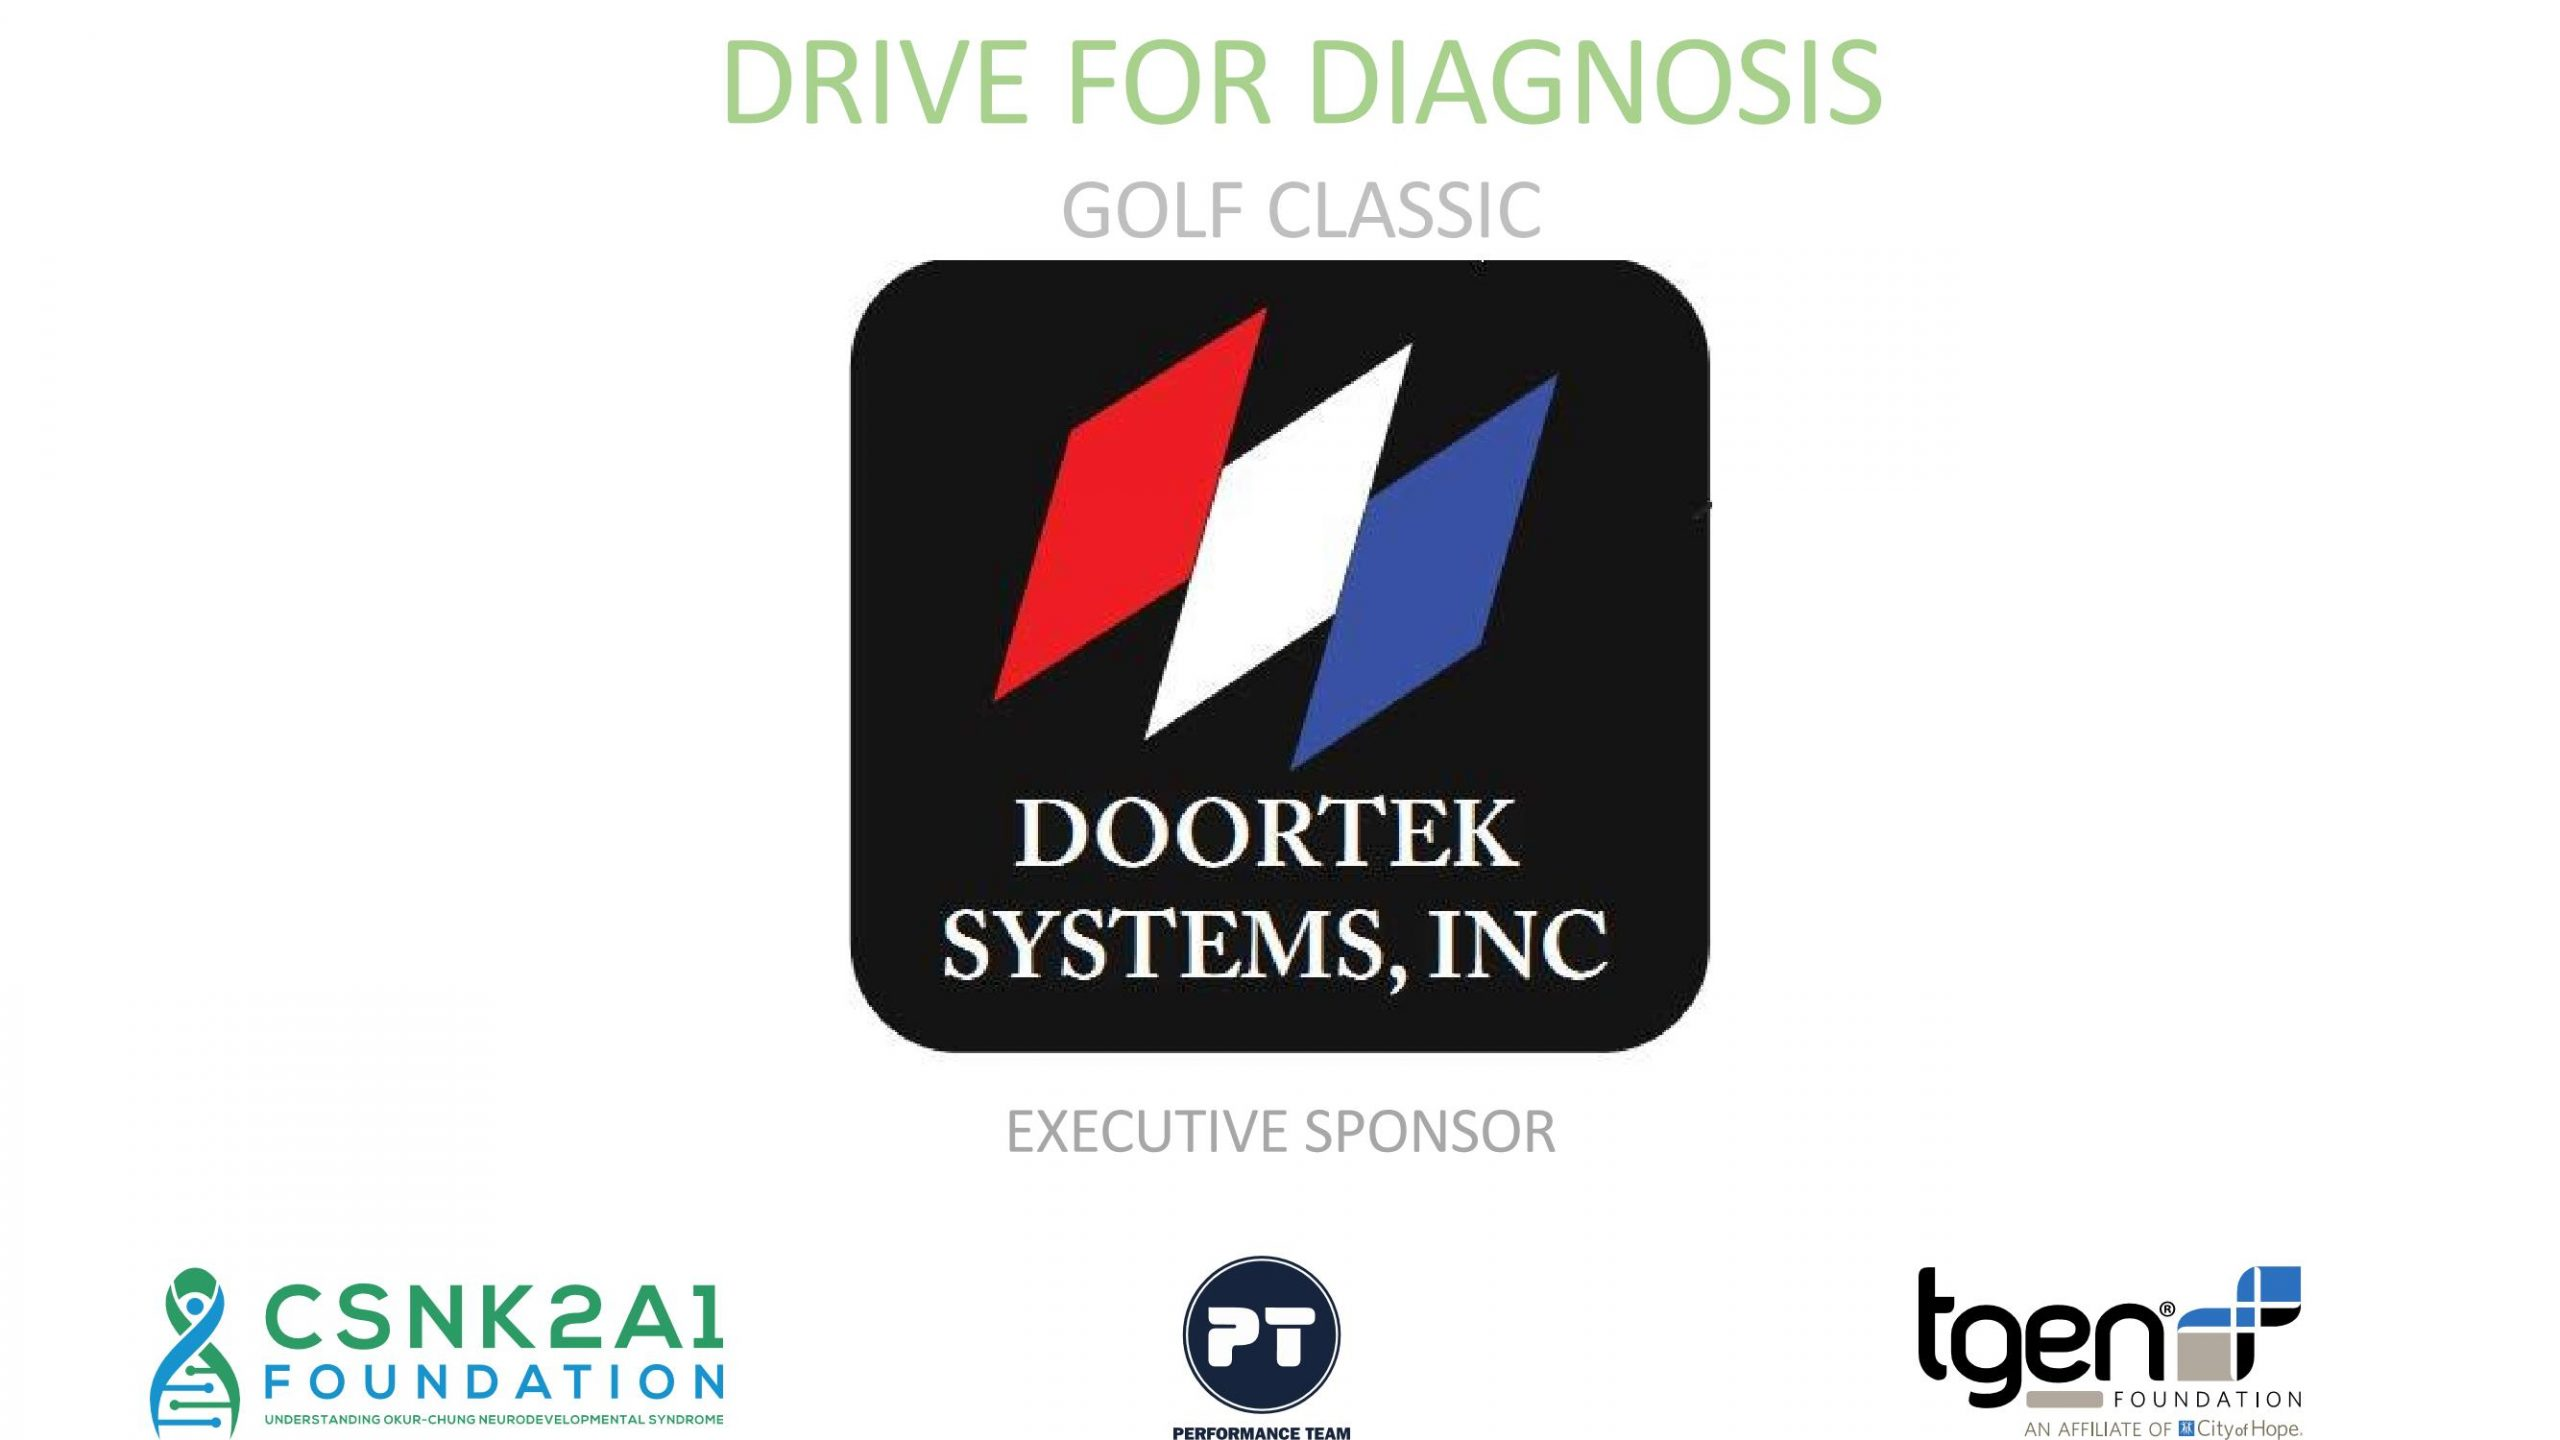 Executive Sponsor - Doortex Systems, Inc.